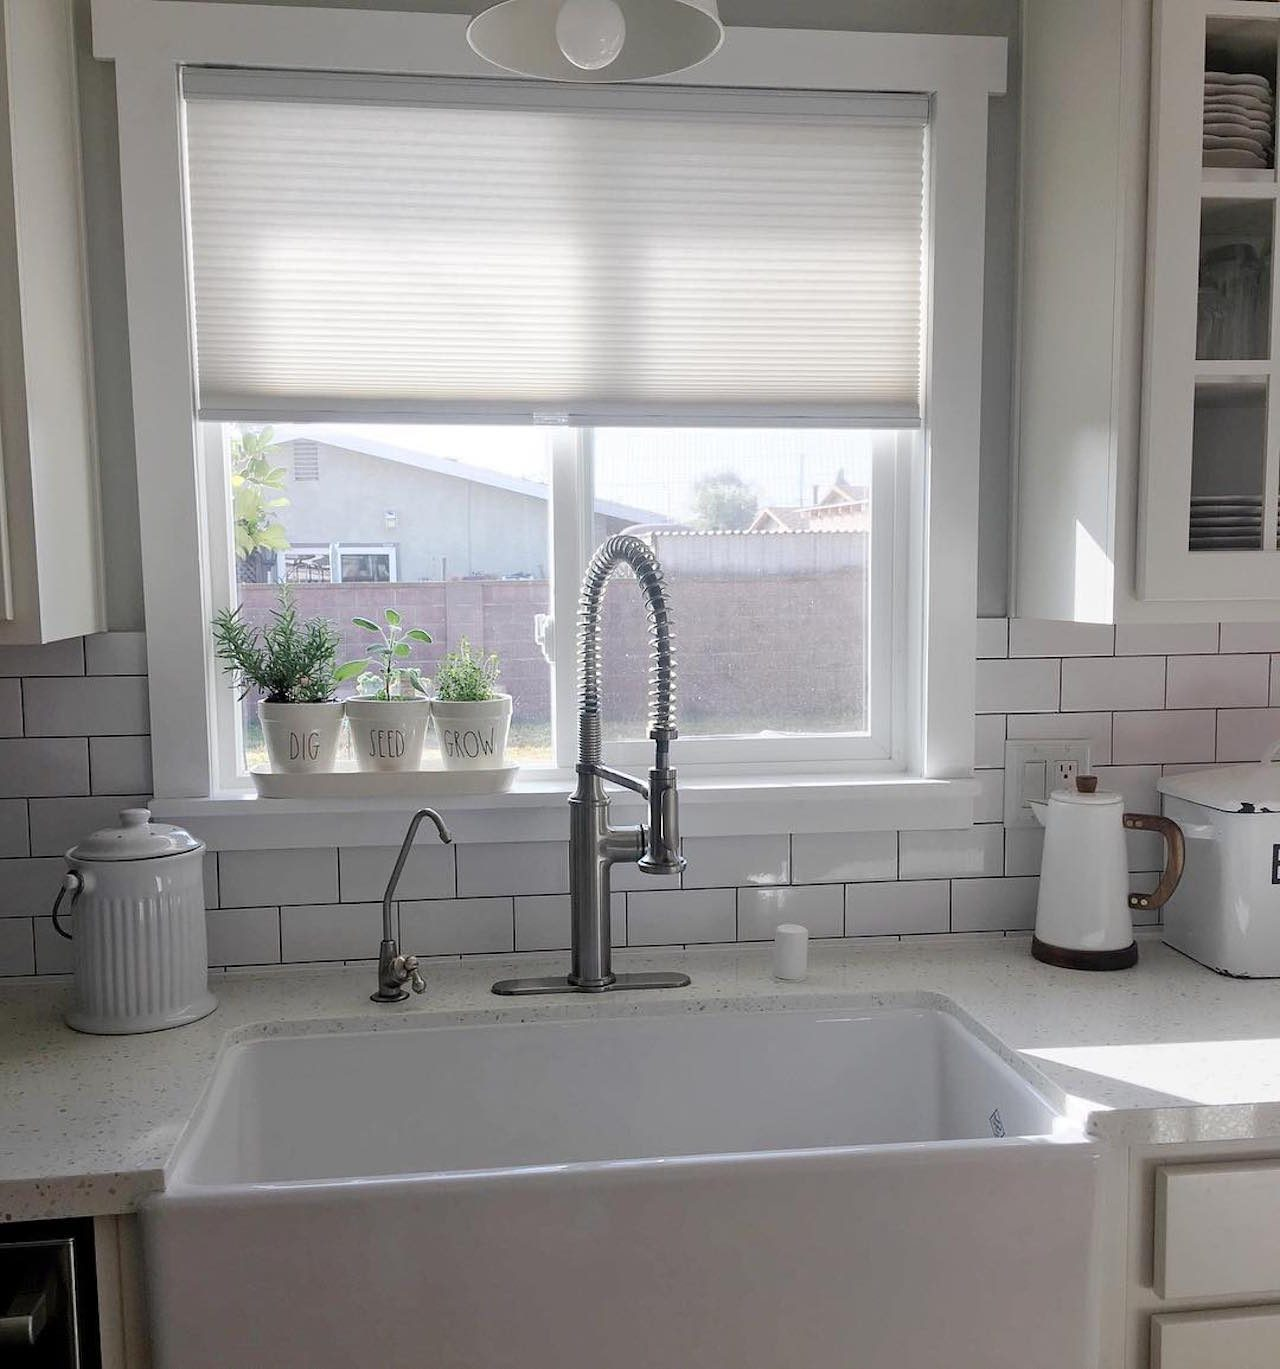 White tile backsplash in modern kitchen